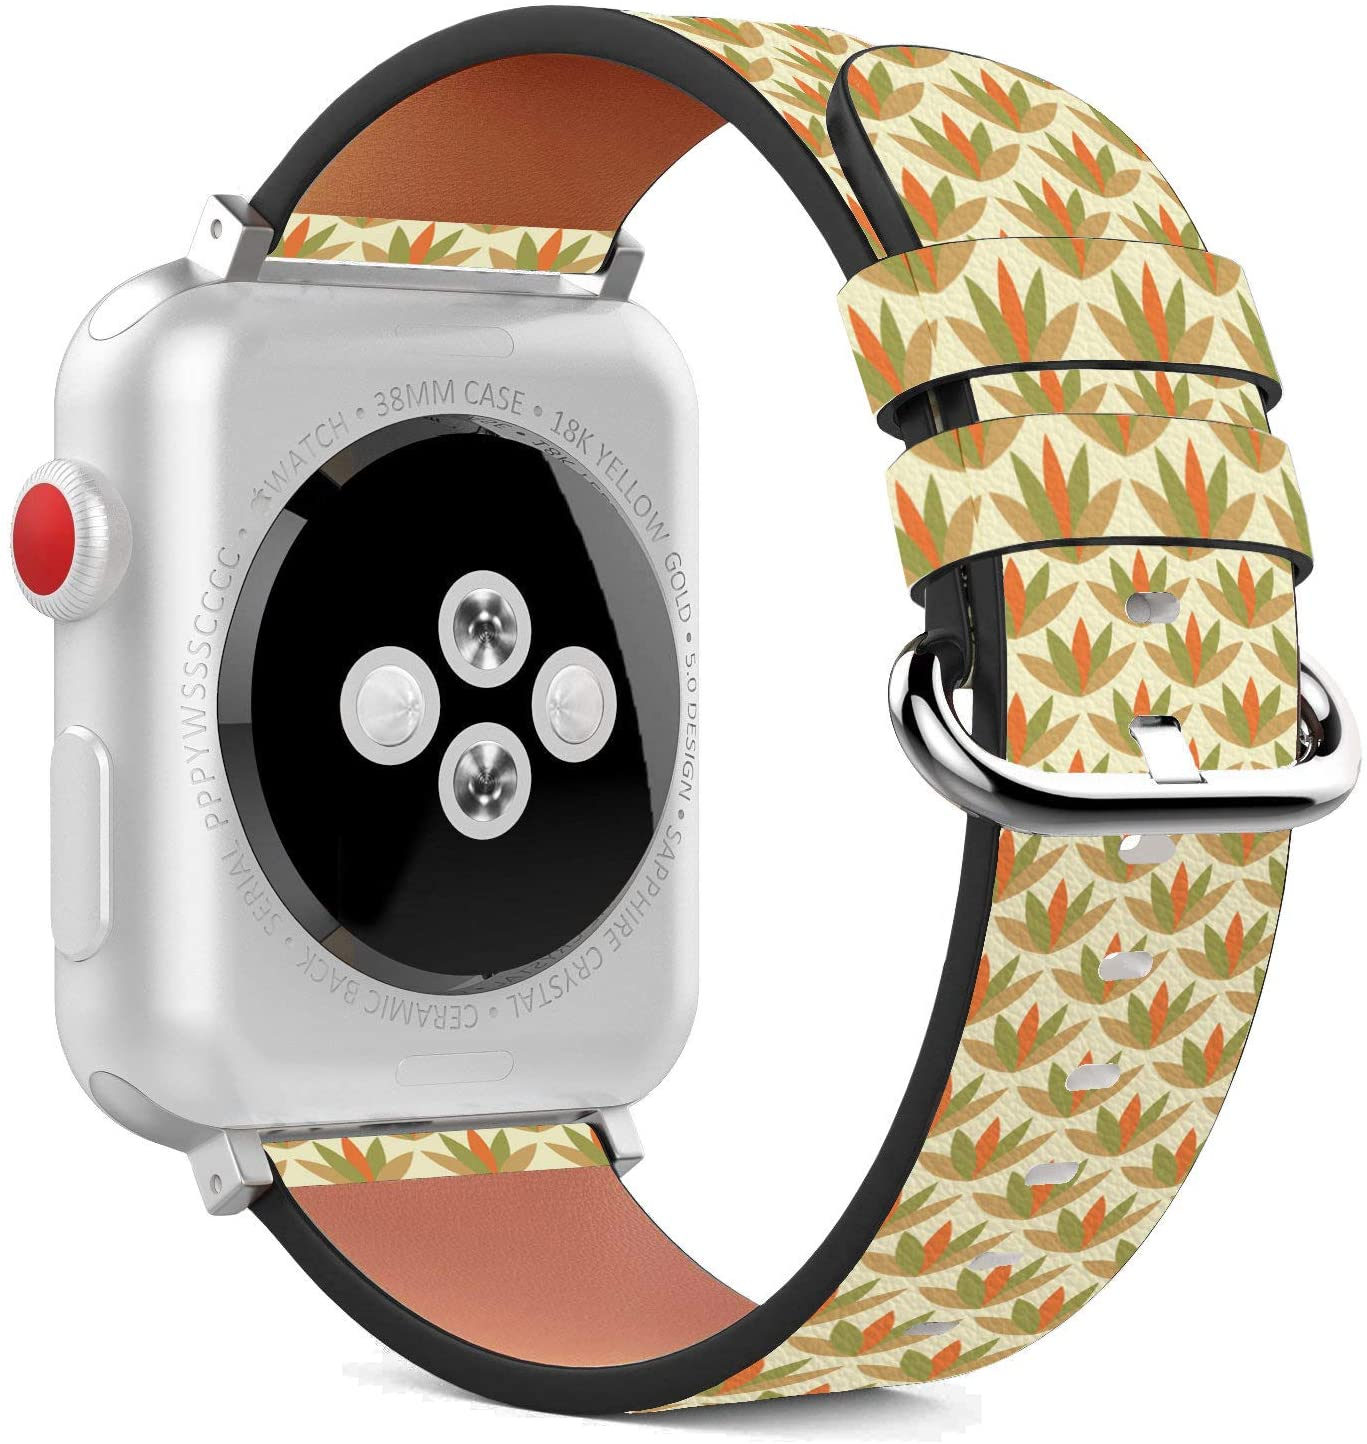 Compatible with Apple Watch - 42mm / 44mm (Serie 5,4,3,2,1) Leather Wristband Bracelet with Stainless Steel Clasp and Adapters - Yellow Desert Bush